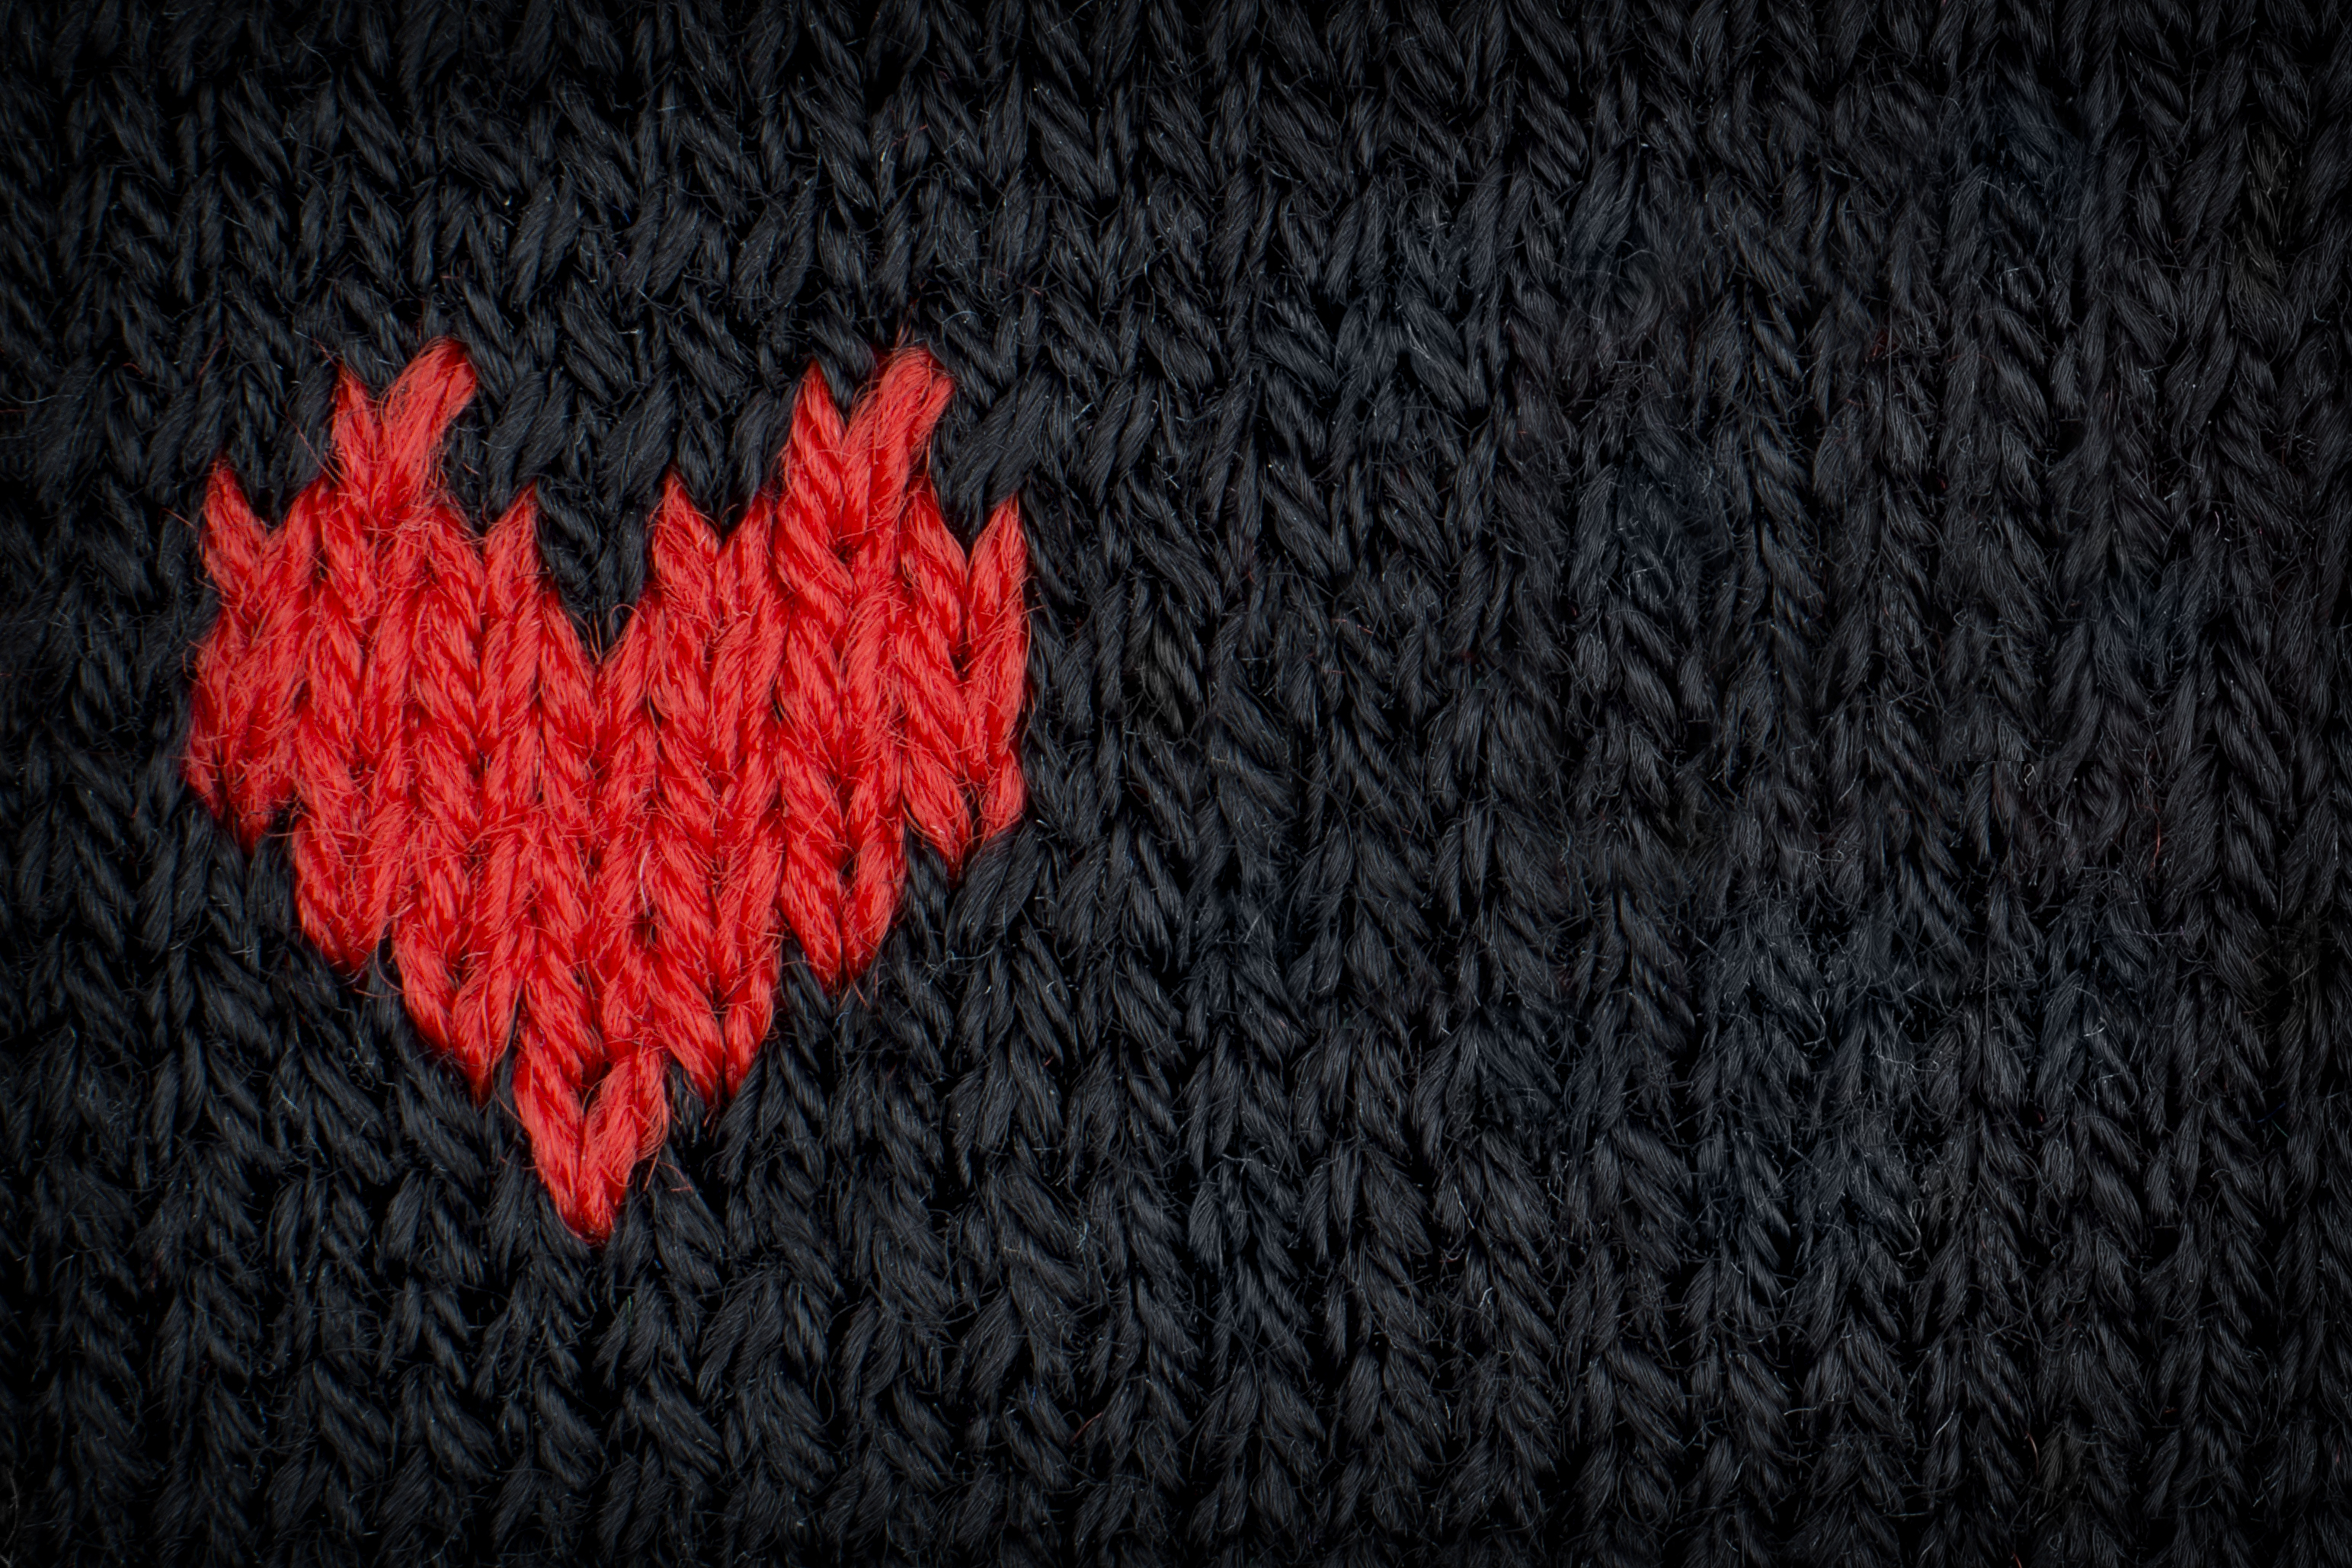 Ravelry Patterns Knitting The Power Of Ravelrys Stance Against White Supremacy Reaches Beyond